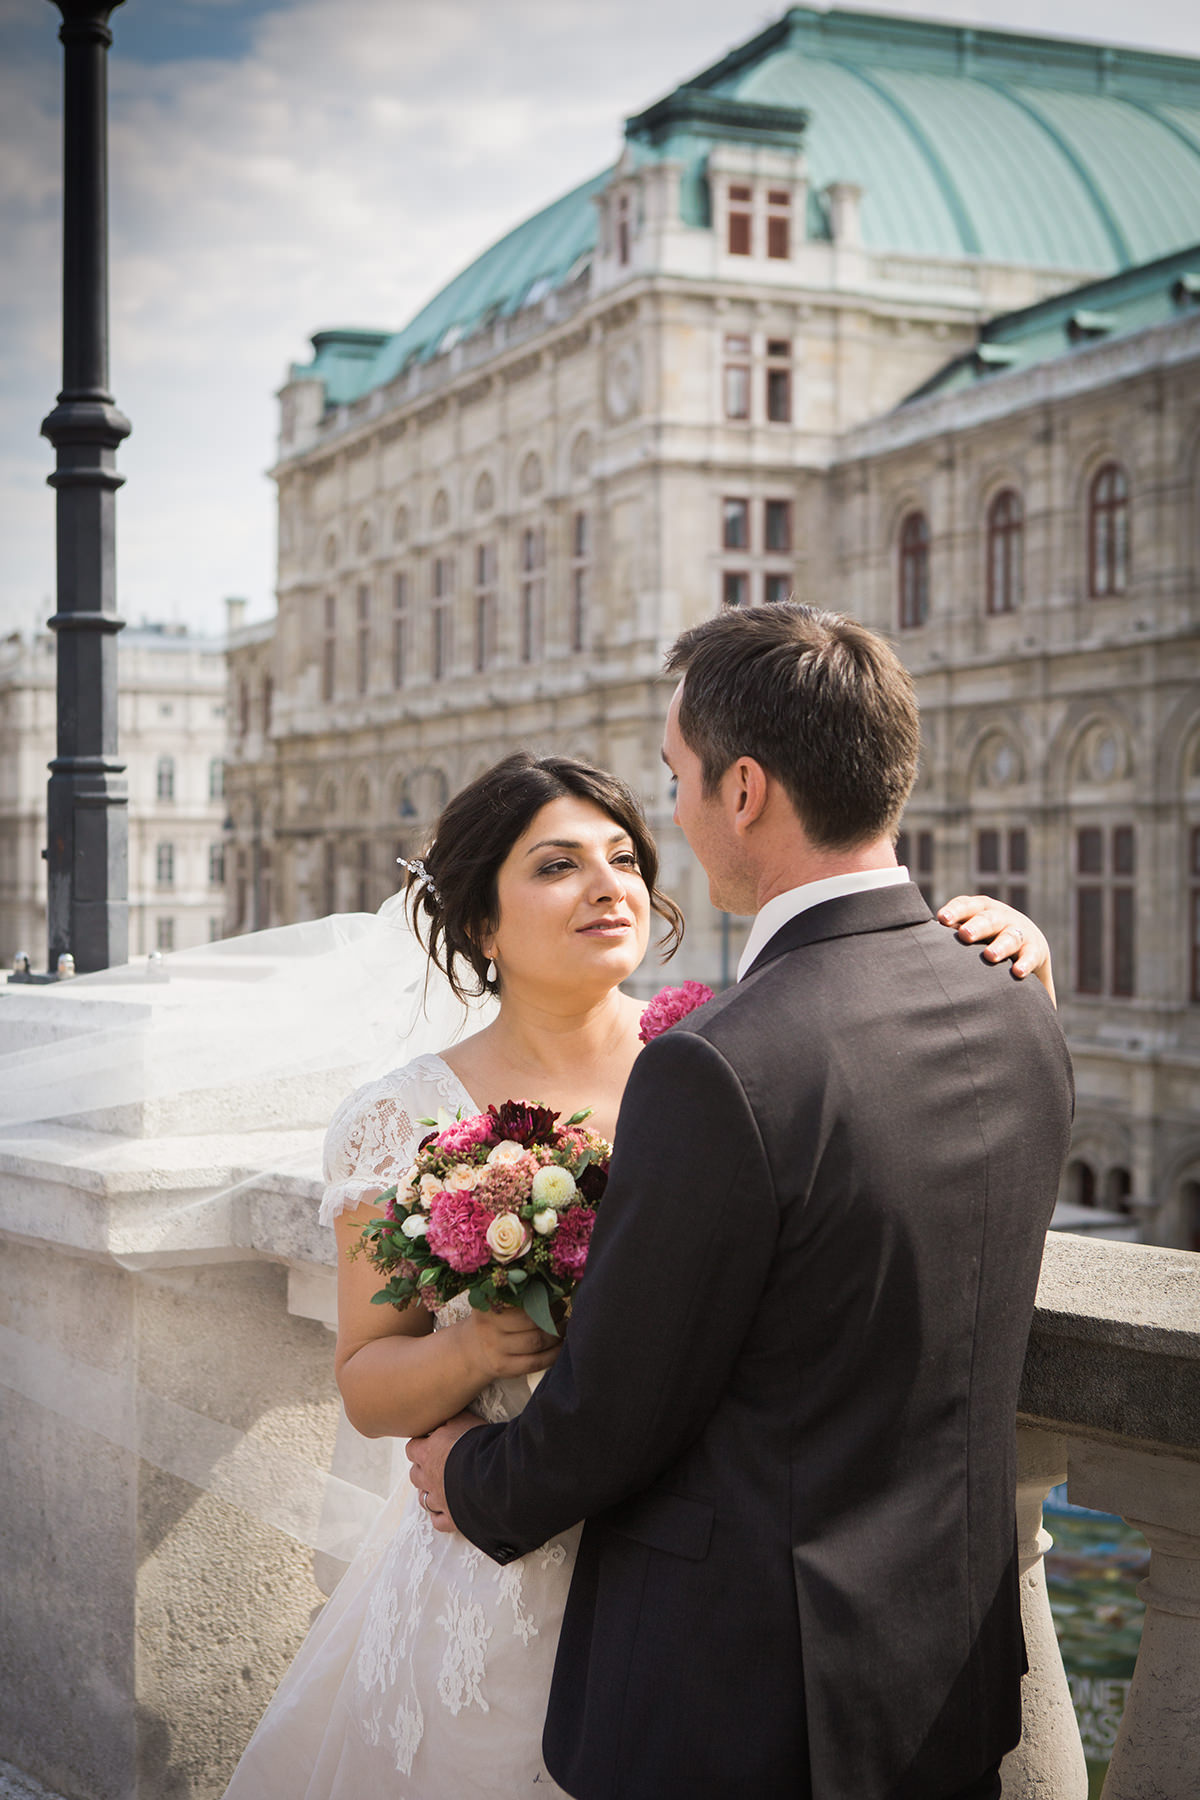 wedding-photography-vienna-woluh-guillaume-64